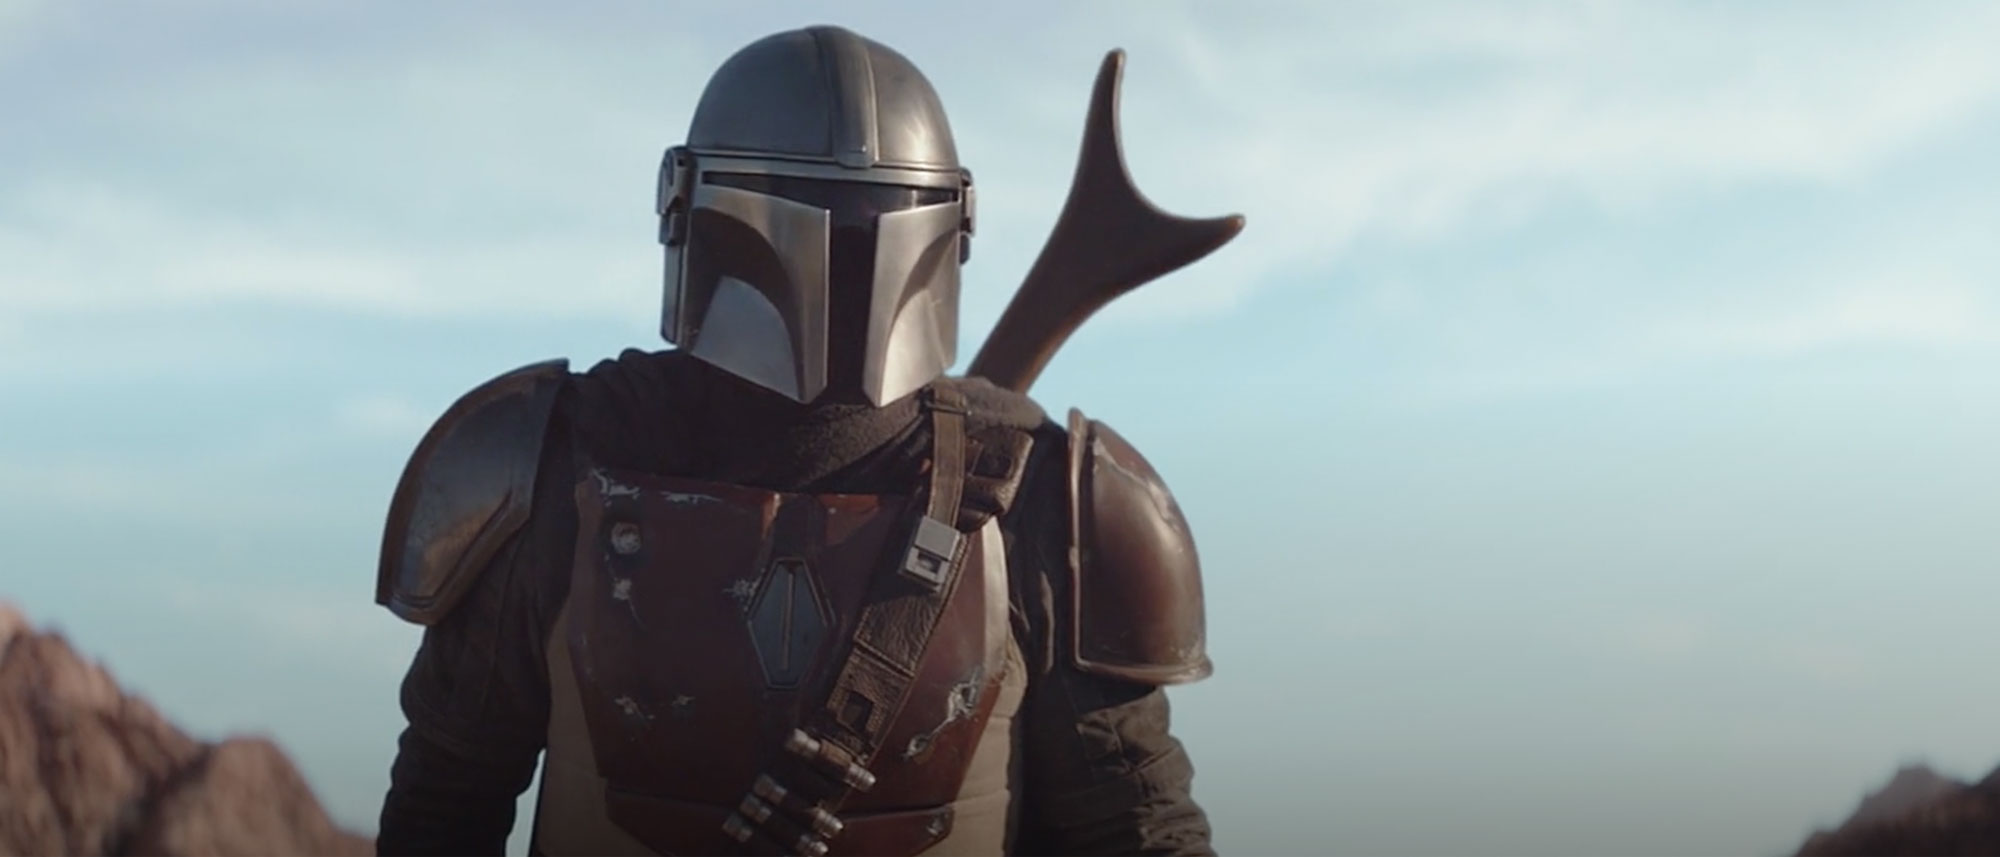 Jon Favreau has done well with The Mandalorian so far